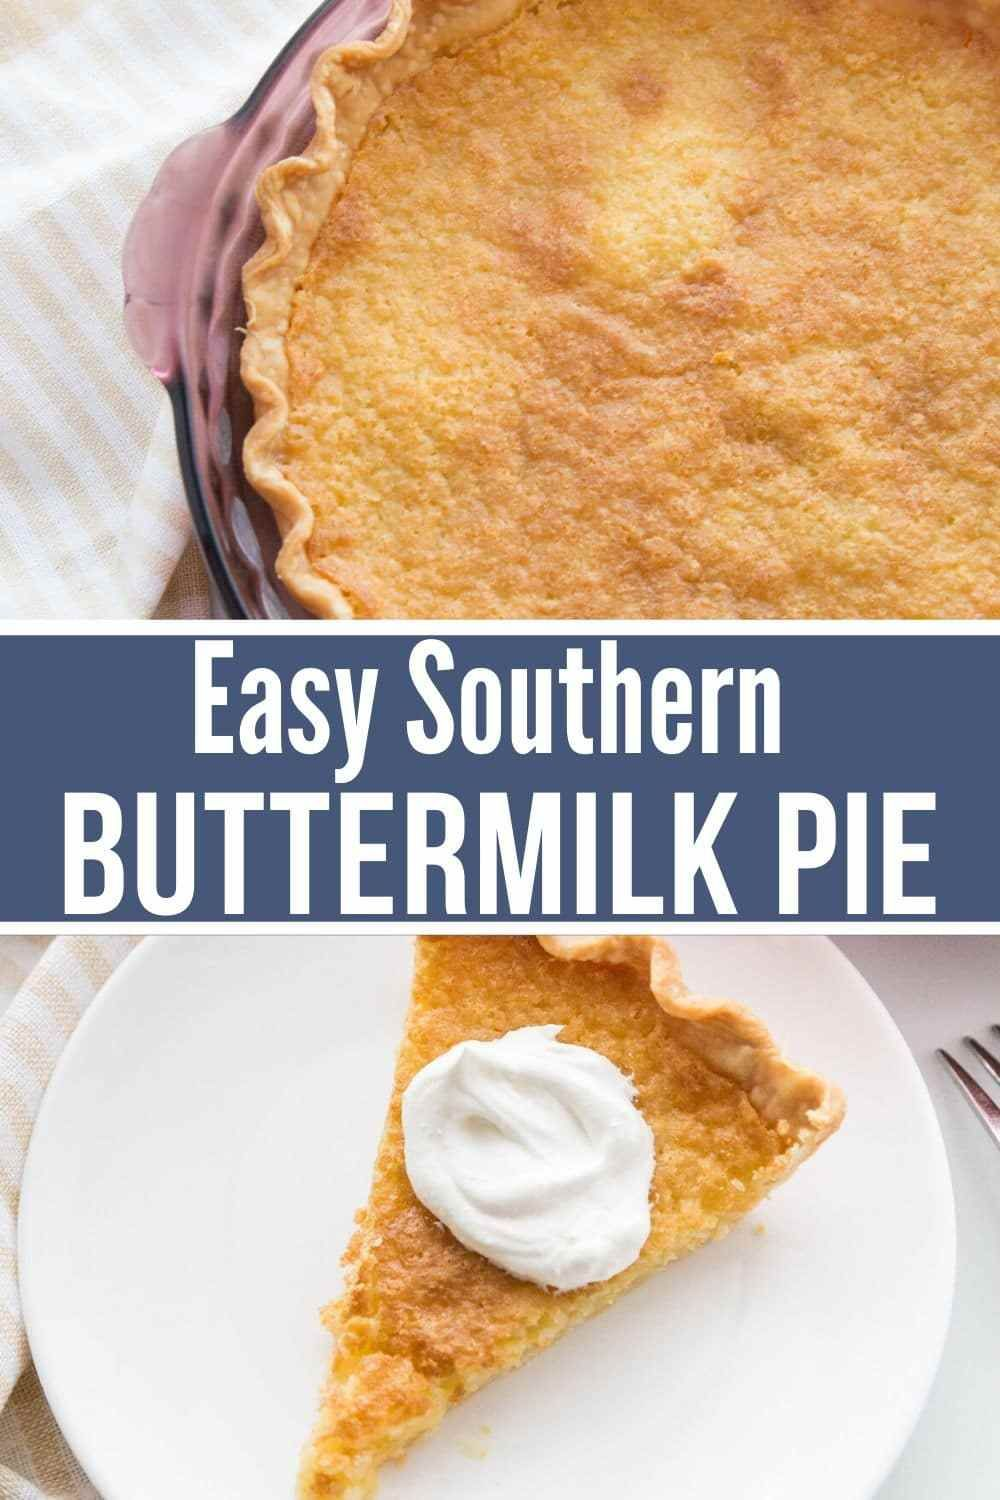 Southern Buttermilk Pie Recipe Recipe Buttermilk Pie Buttermilk Pie Recipe Easy Pie Recipes